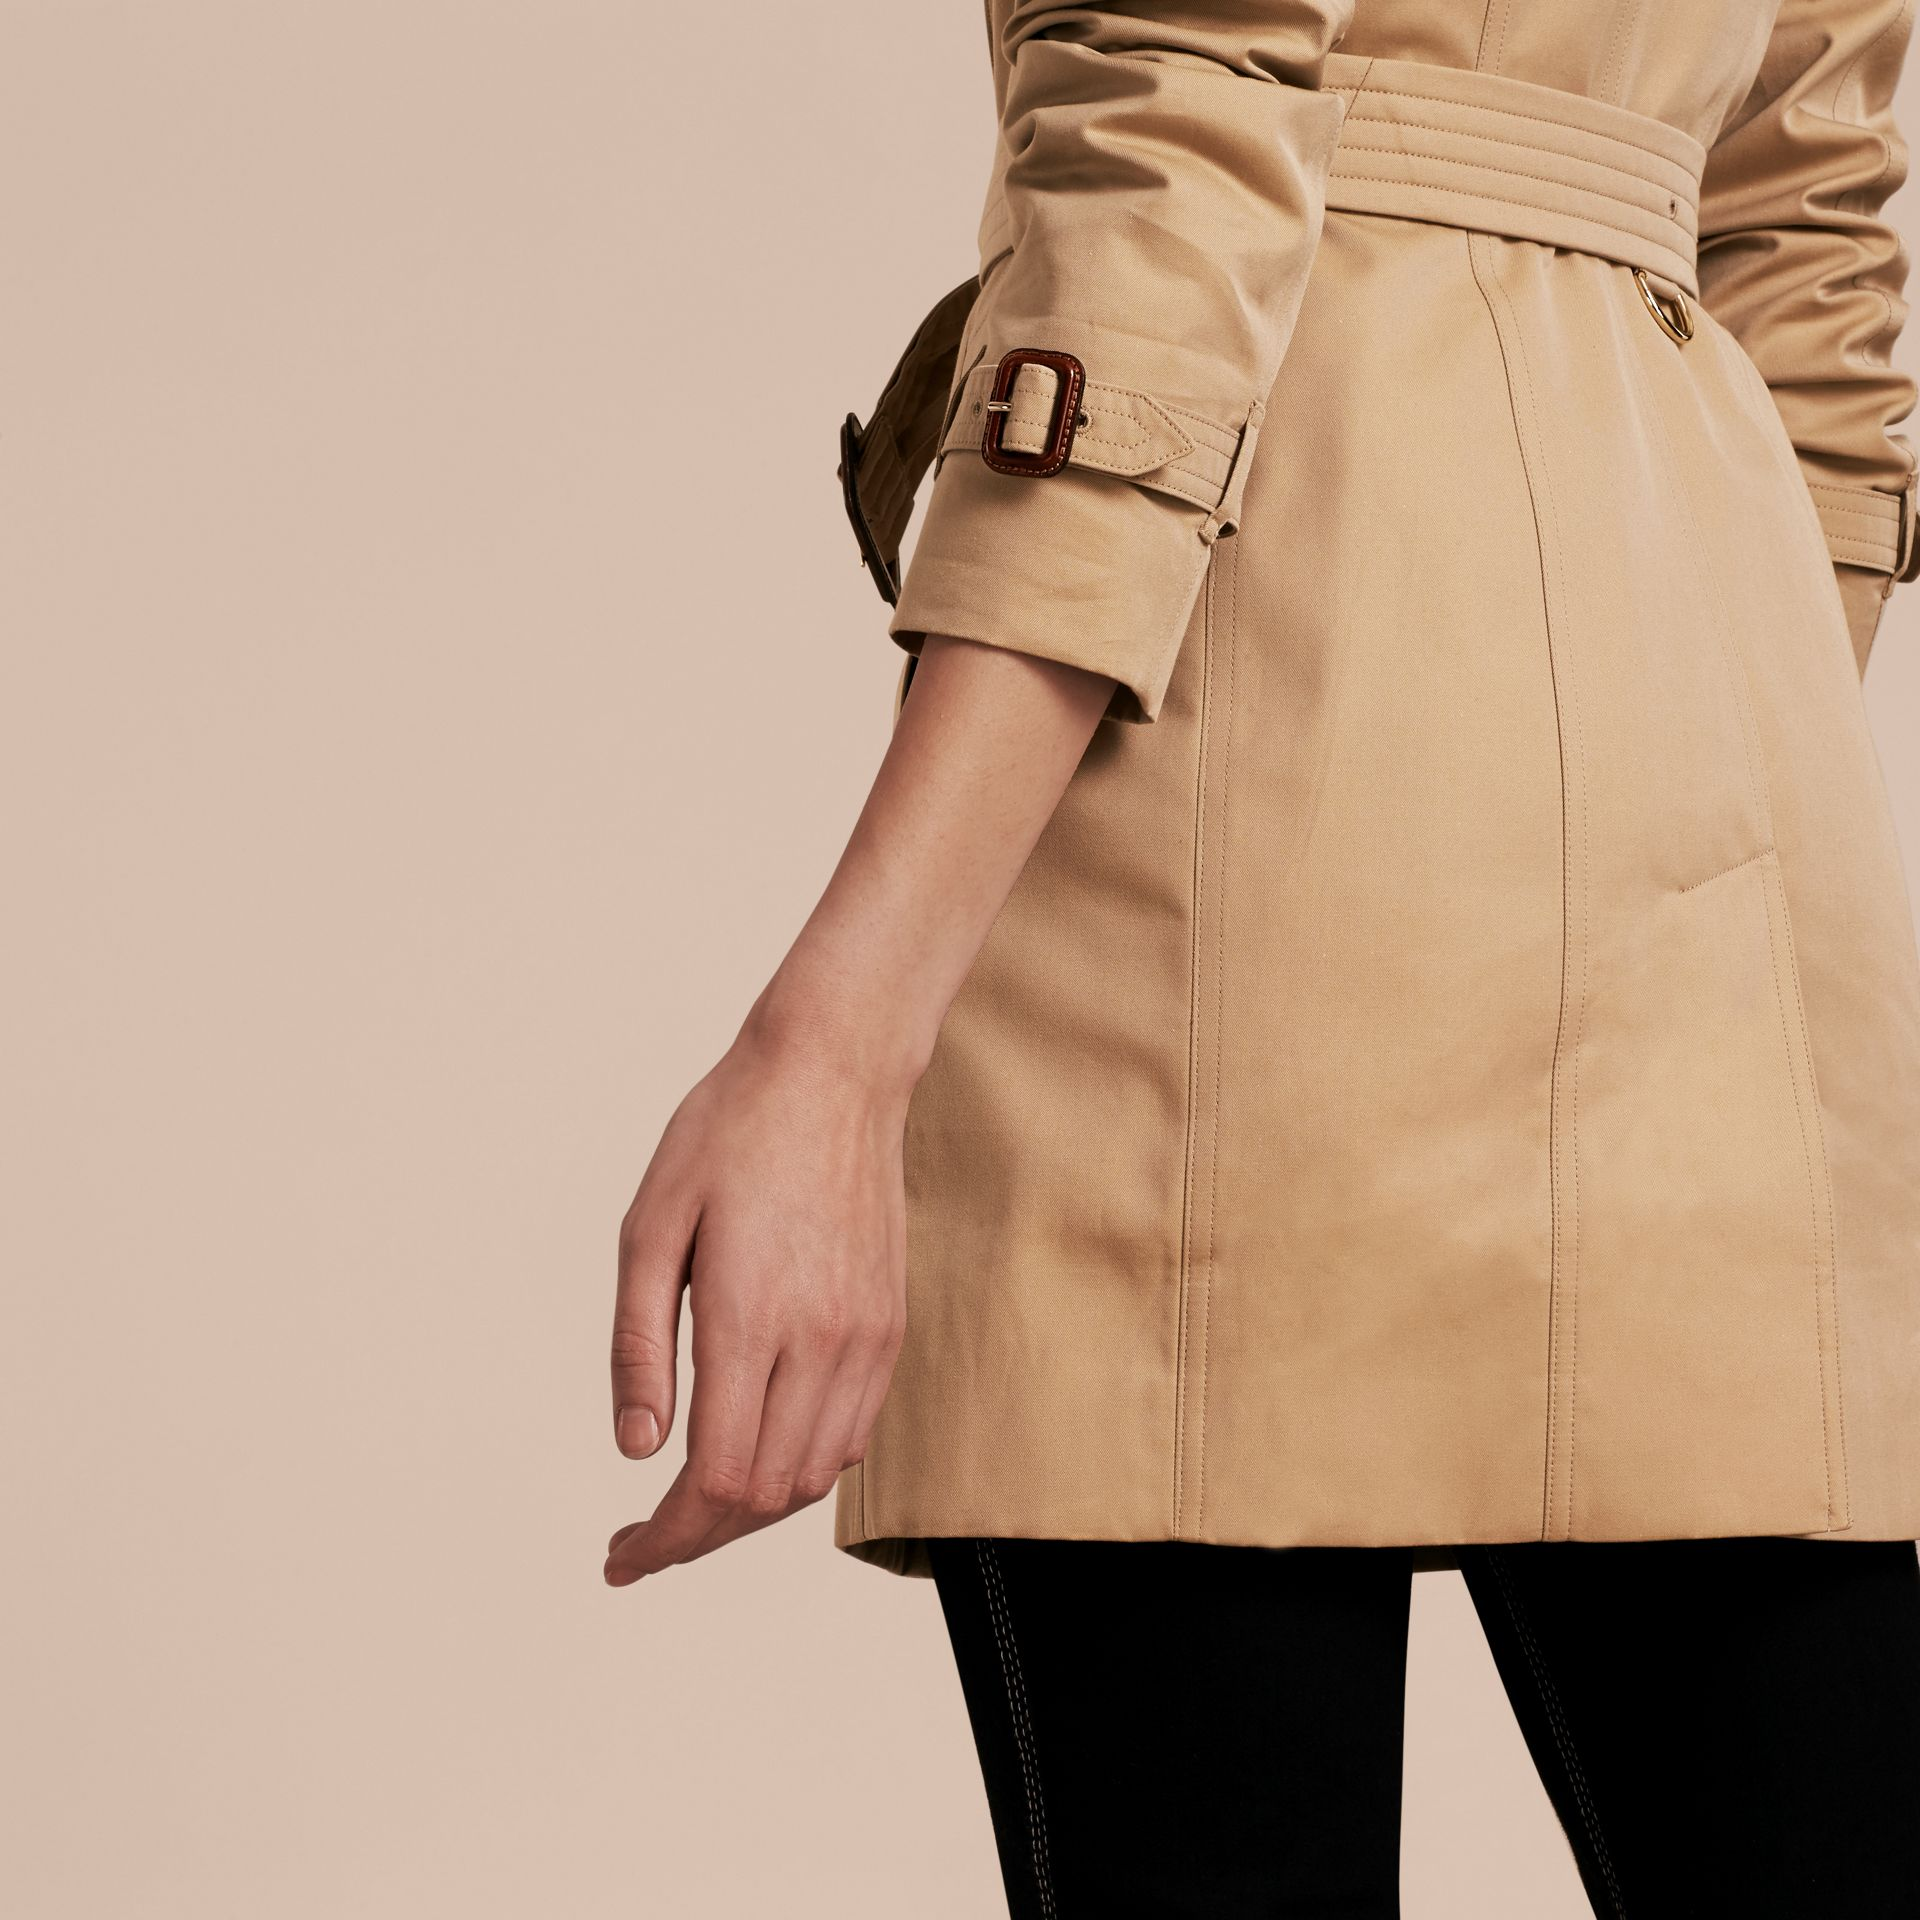 Honey Leather Trim Trench Coat with Detachable Shearling Collar - gallery image 6